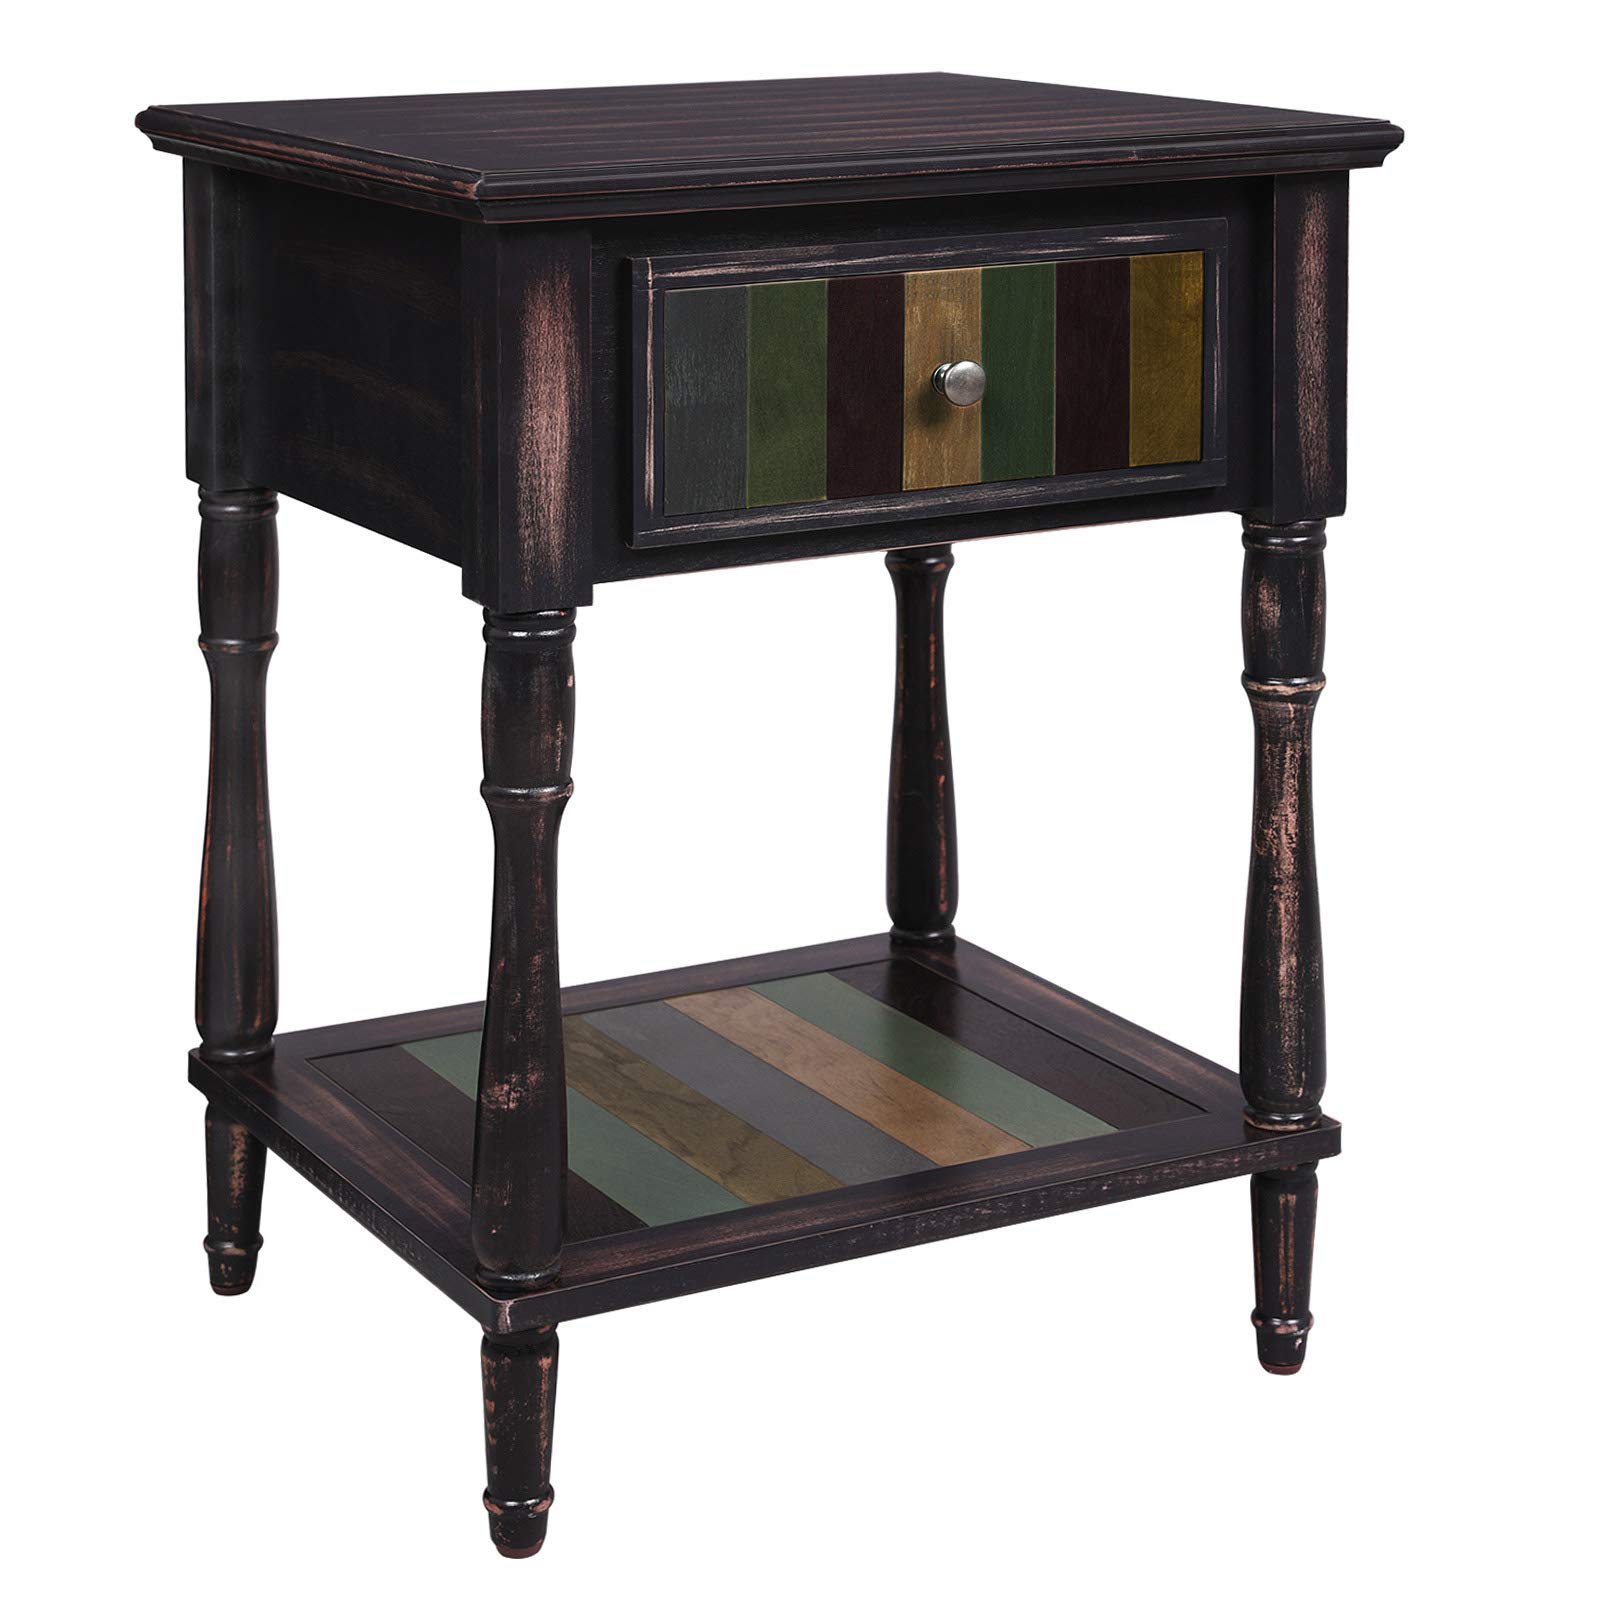 VASAGLE End Table with 1 Colorful Drawer, Bedside Table with Turned Wood Legs, 1 Storage Shelf, Assembly Without Tools, Nightstand for Bedroom, Country Brown ULET17GL by VASAGLE